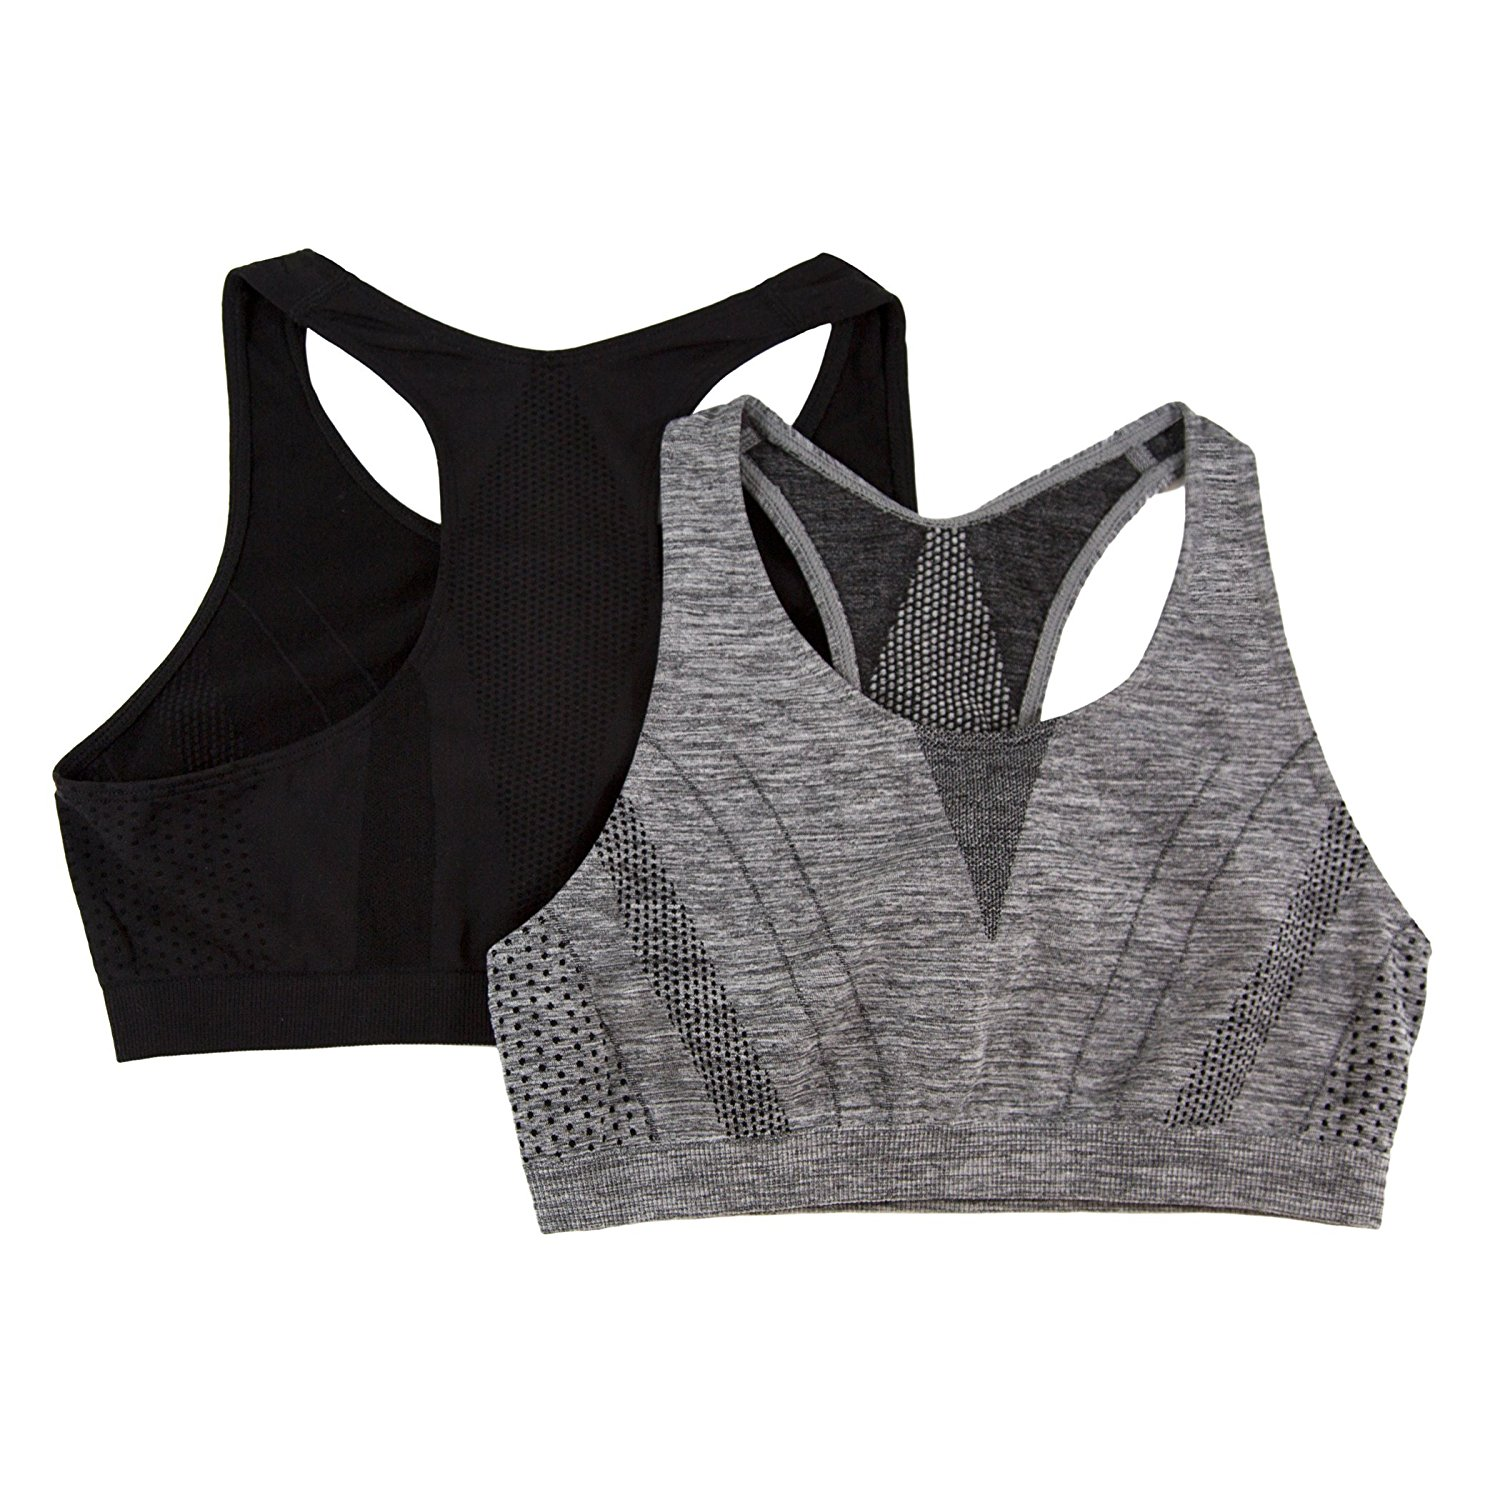 d1d3200580 Get Quotations · Fruit of the Loom Girls  Big Performance Racerback Sport  Bras 2 Pack